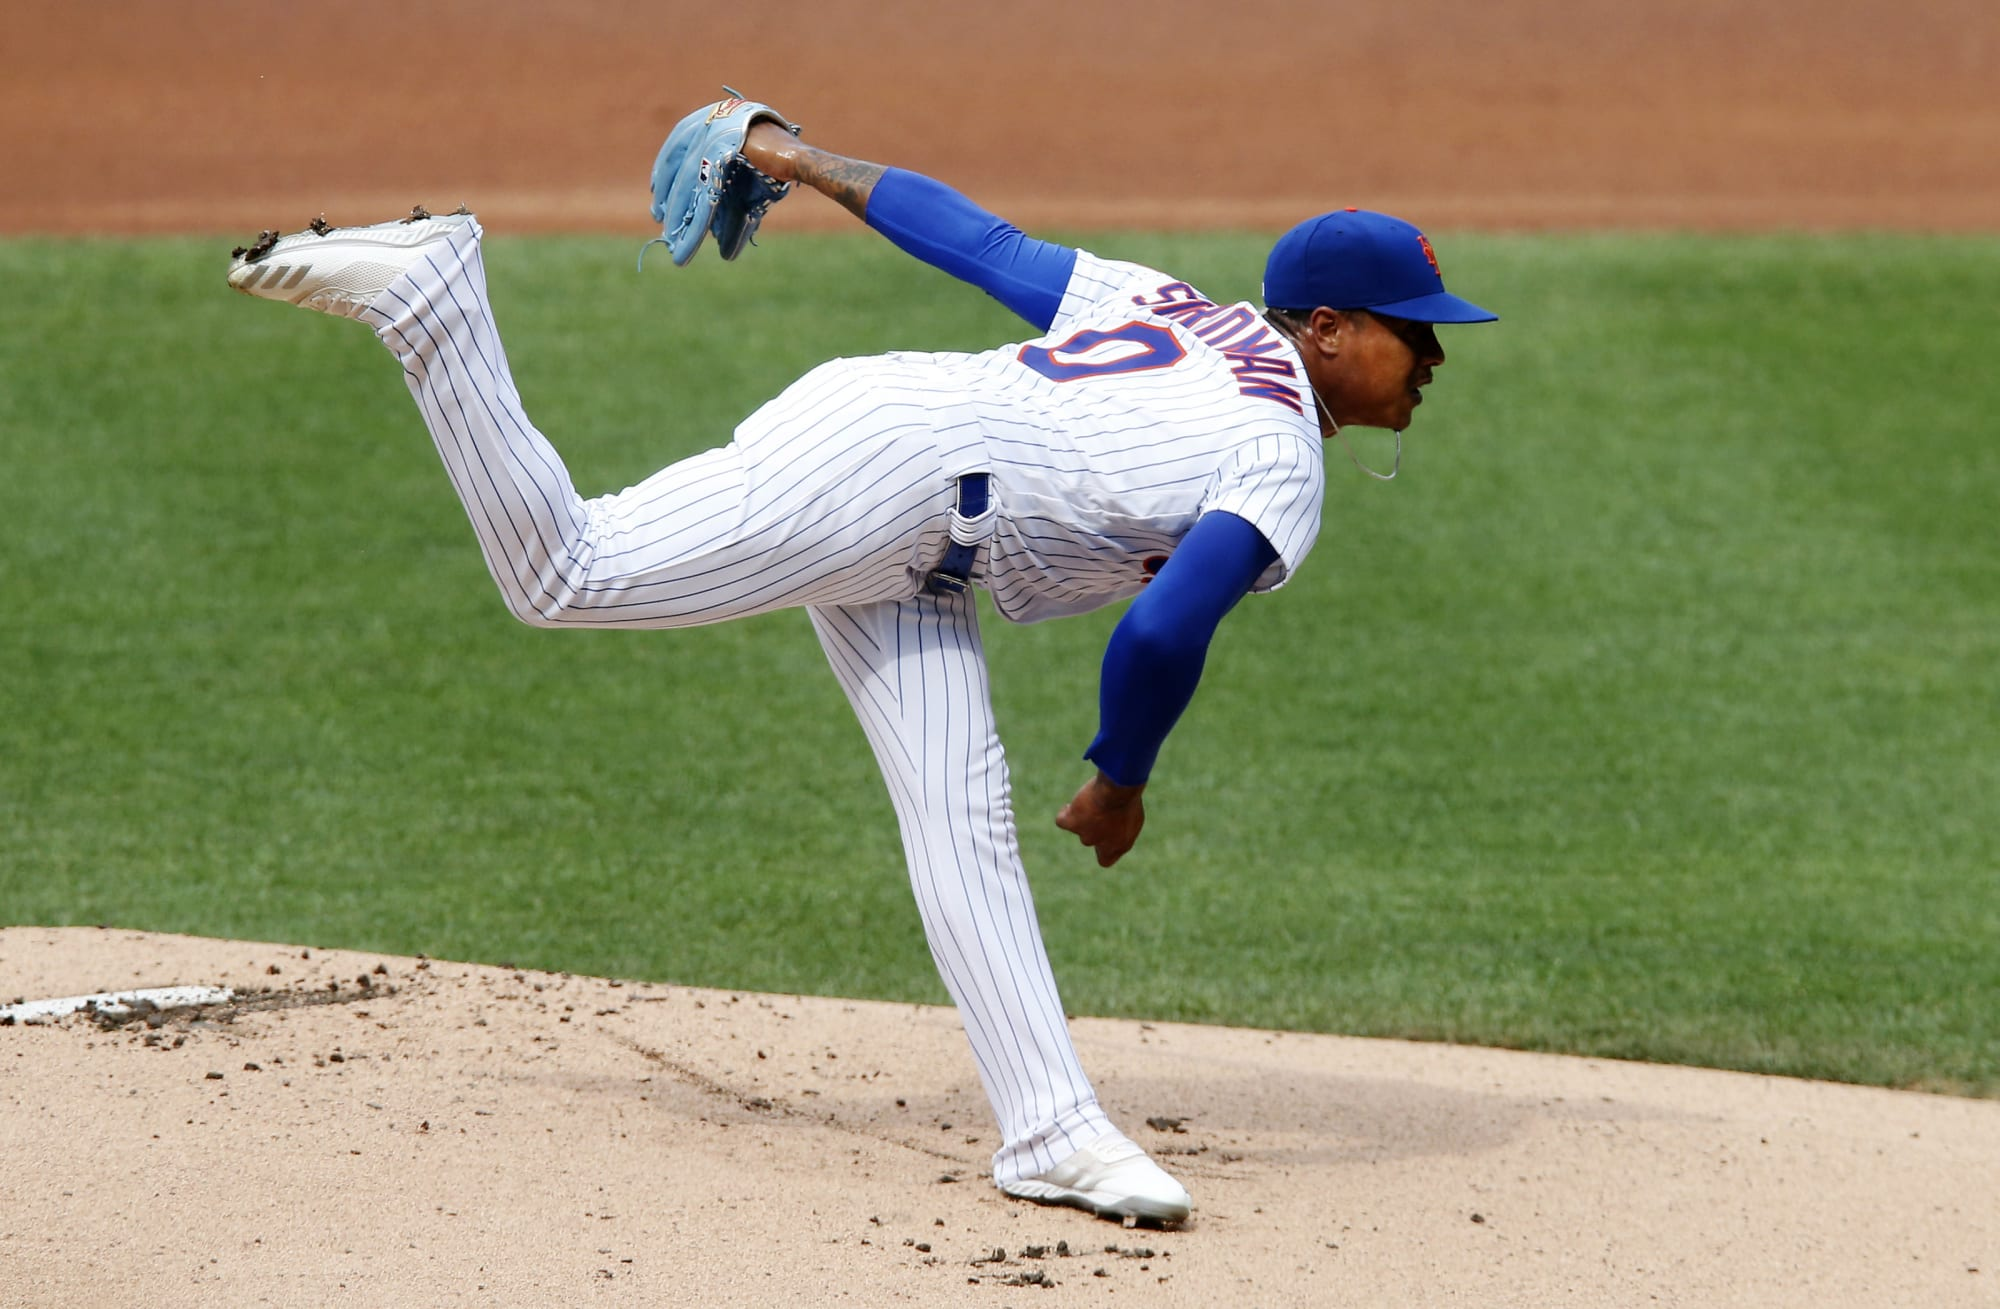 New York Yankees: Marcus Stroman fires back at front office